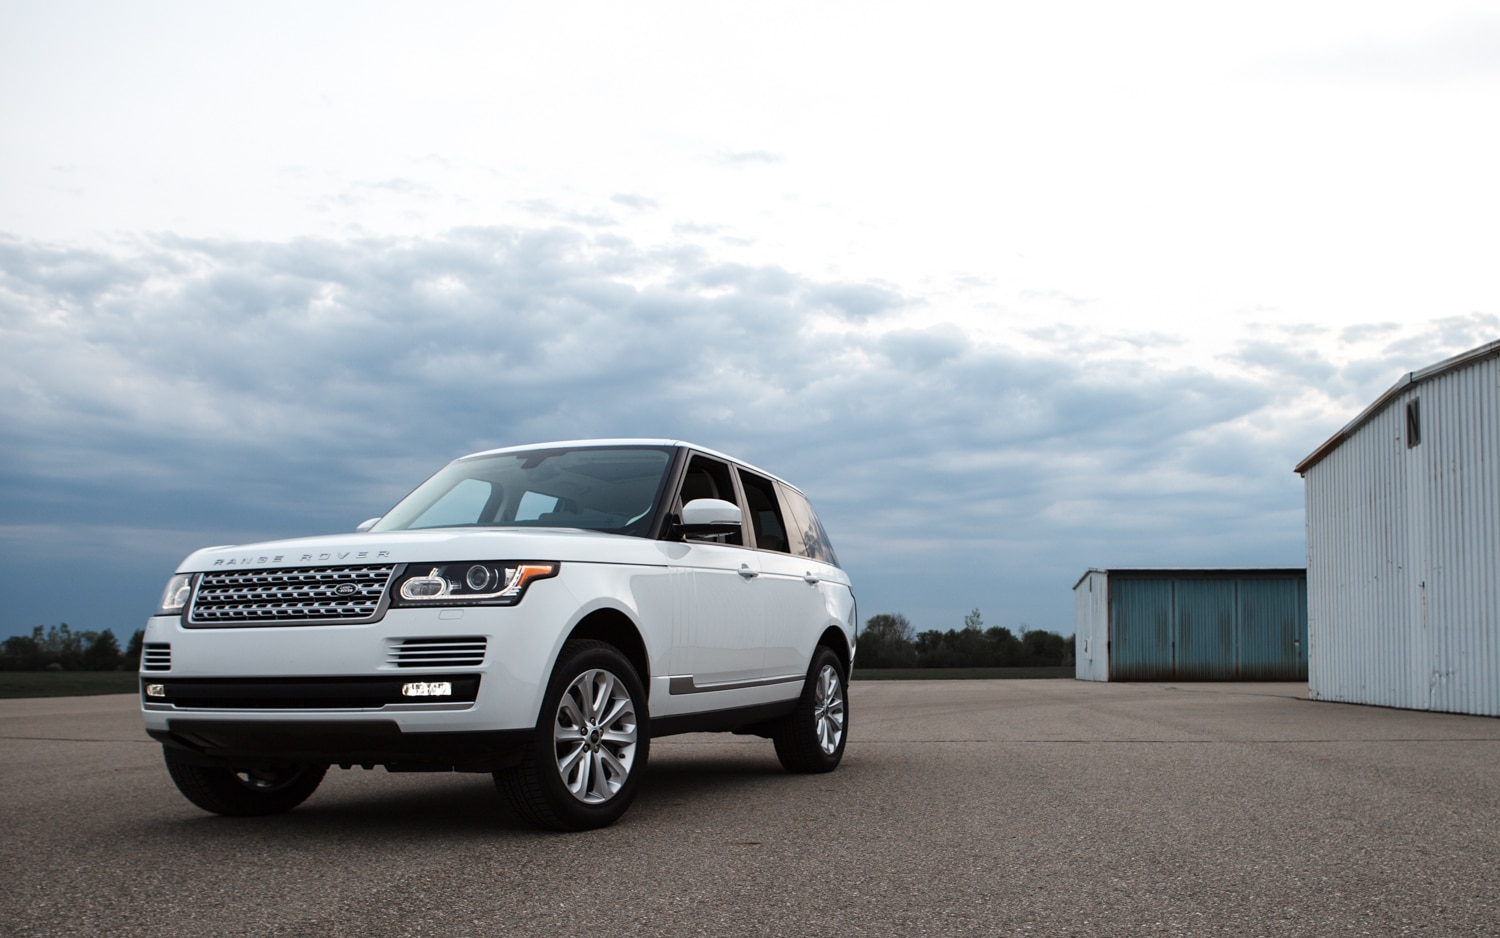 2013 Land Rover Range Rover HSE Front Left View 31